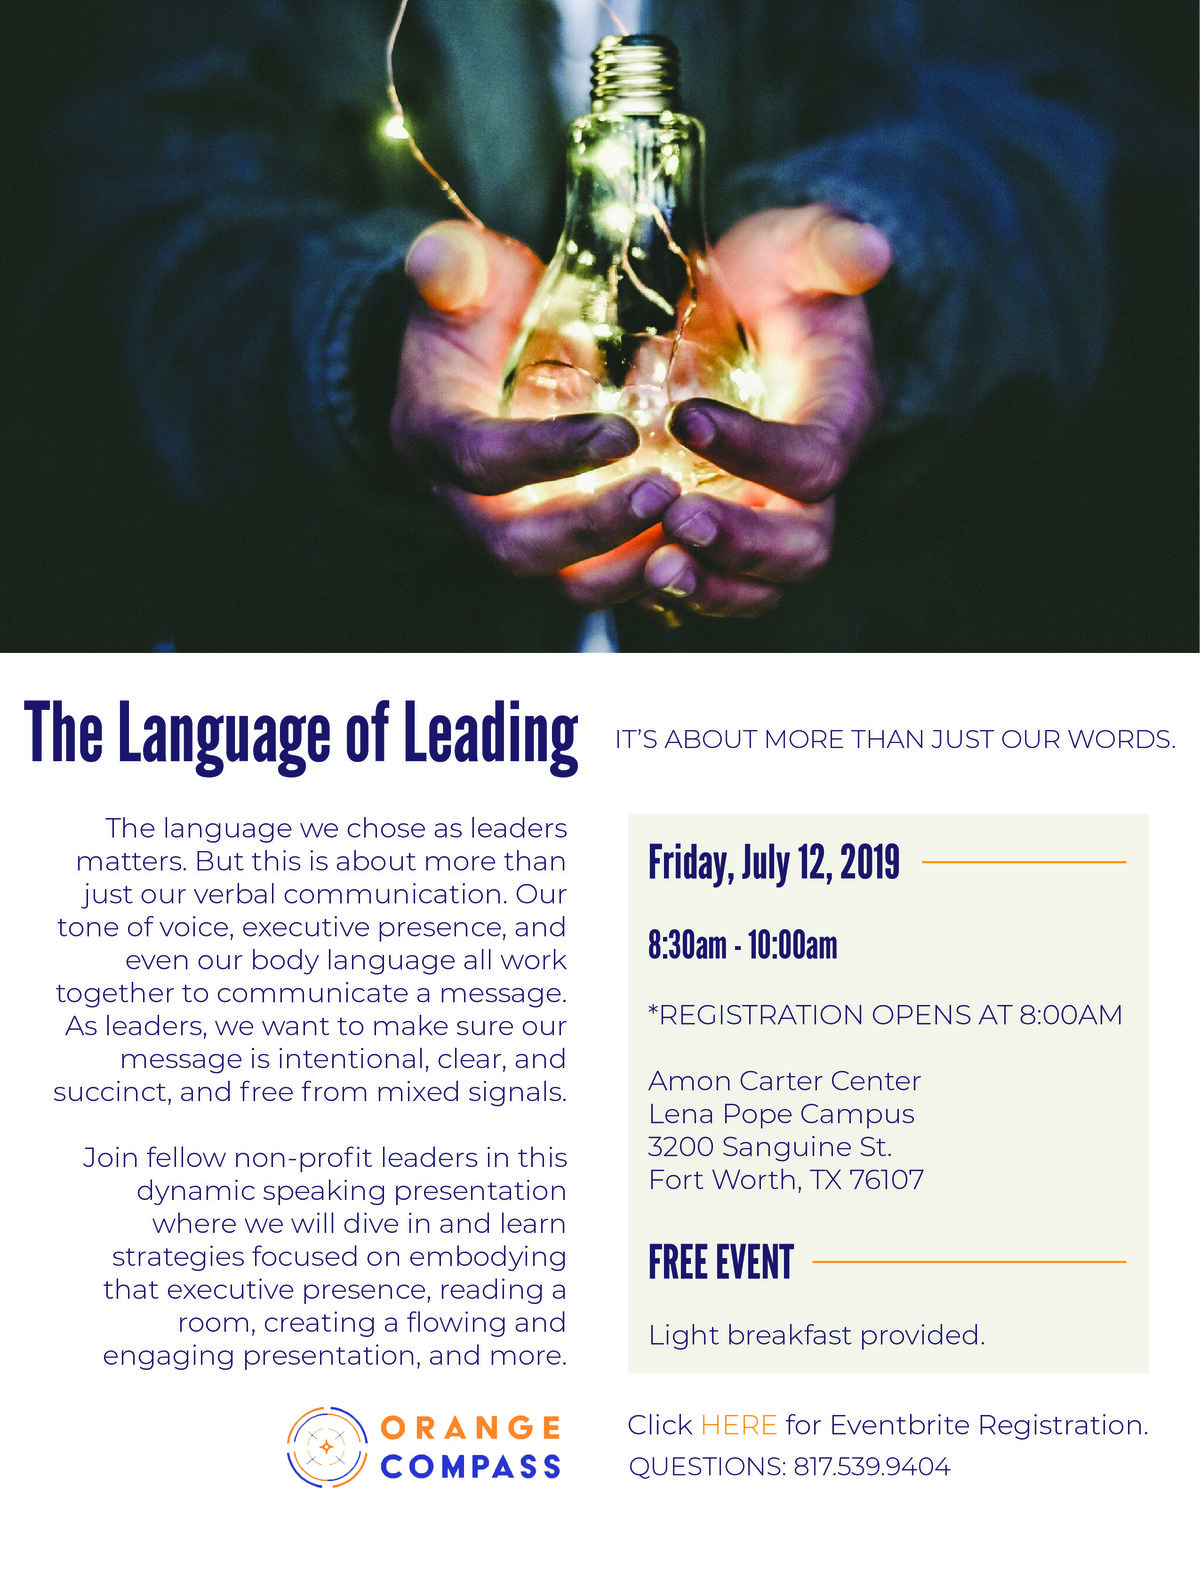 language of leading flyer